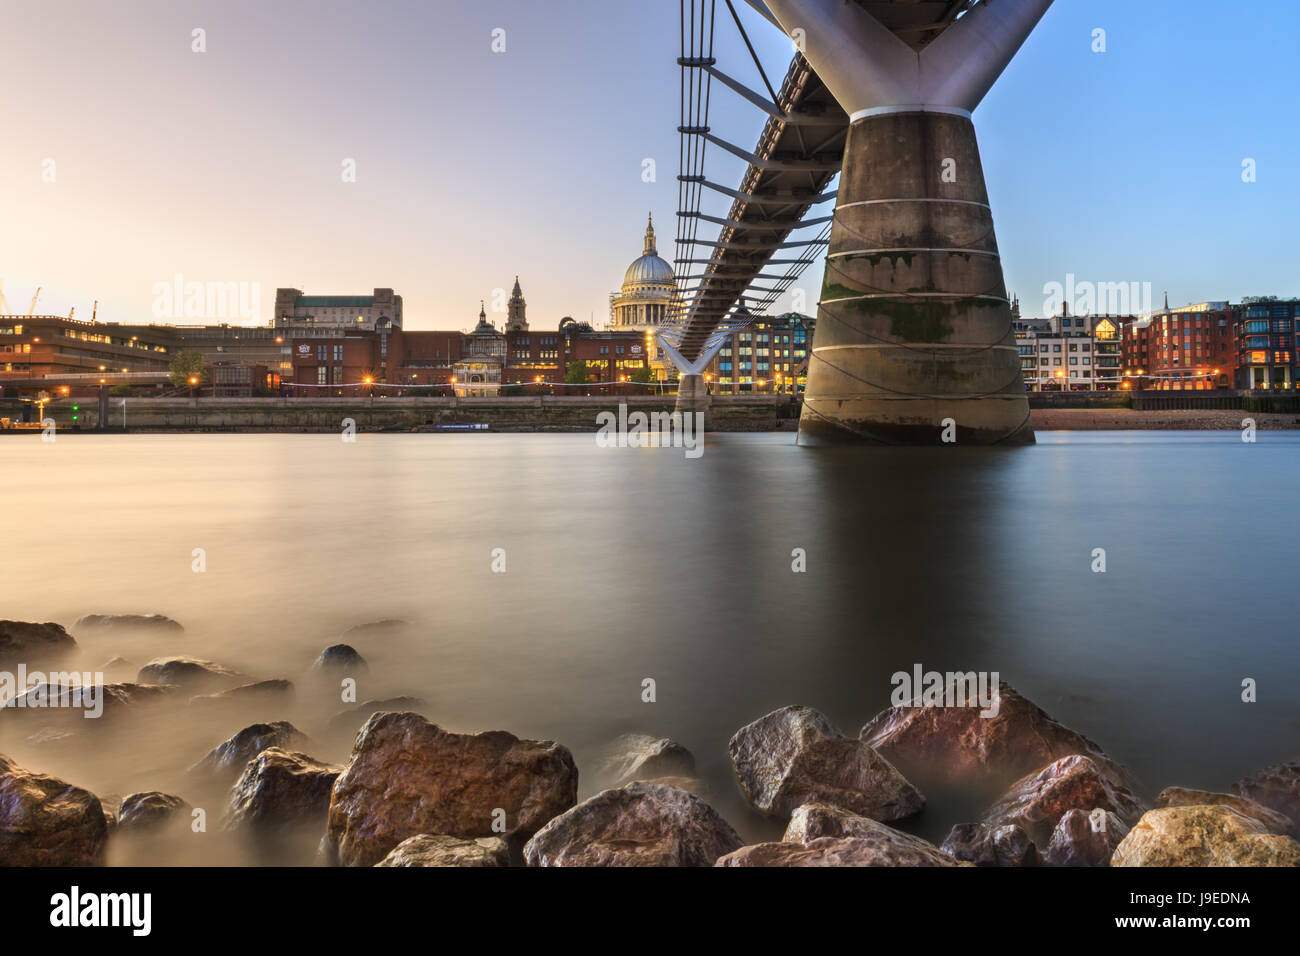 london-sunset-view-across-the-river-thames-millennium-bridge-and-st-J9EDNA.jpg